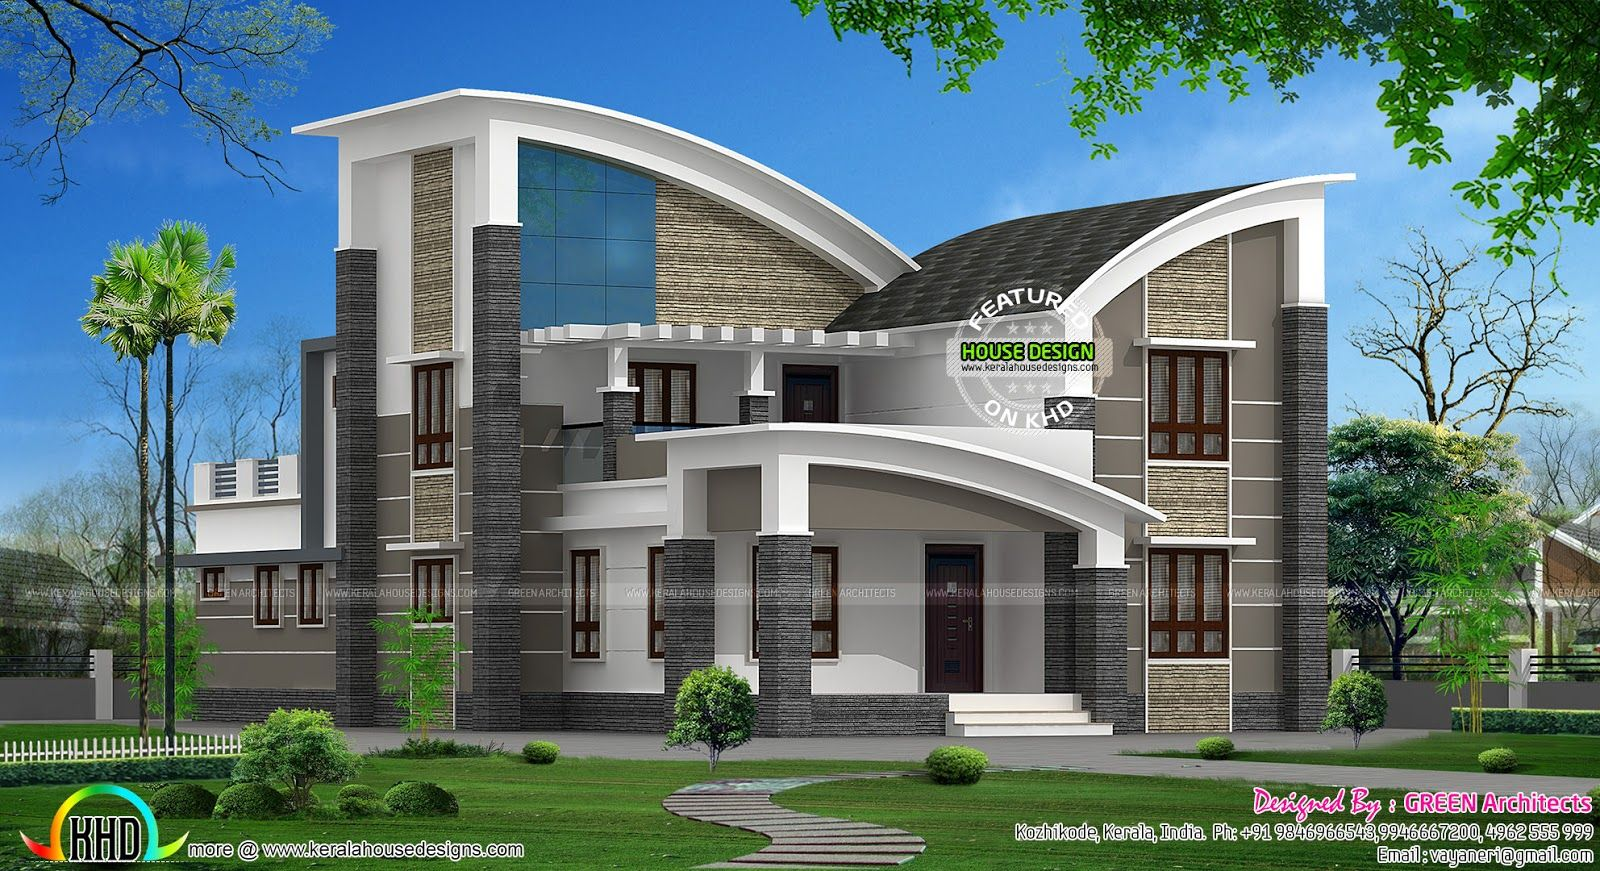 Modern style curved roof villa home inspiration for Architecture design small house india